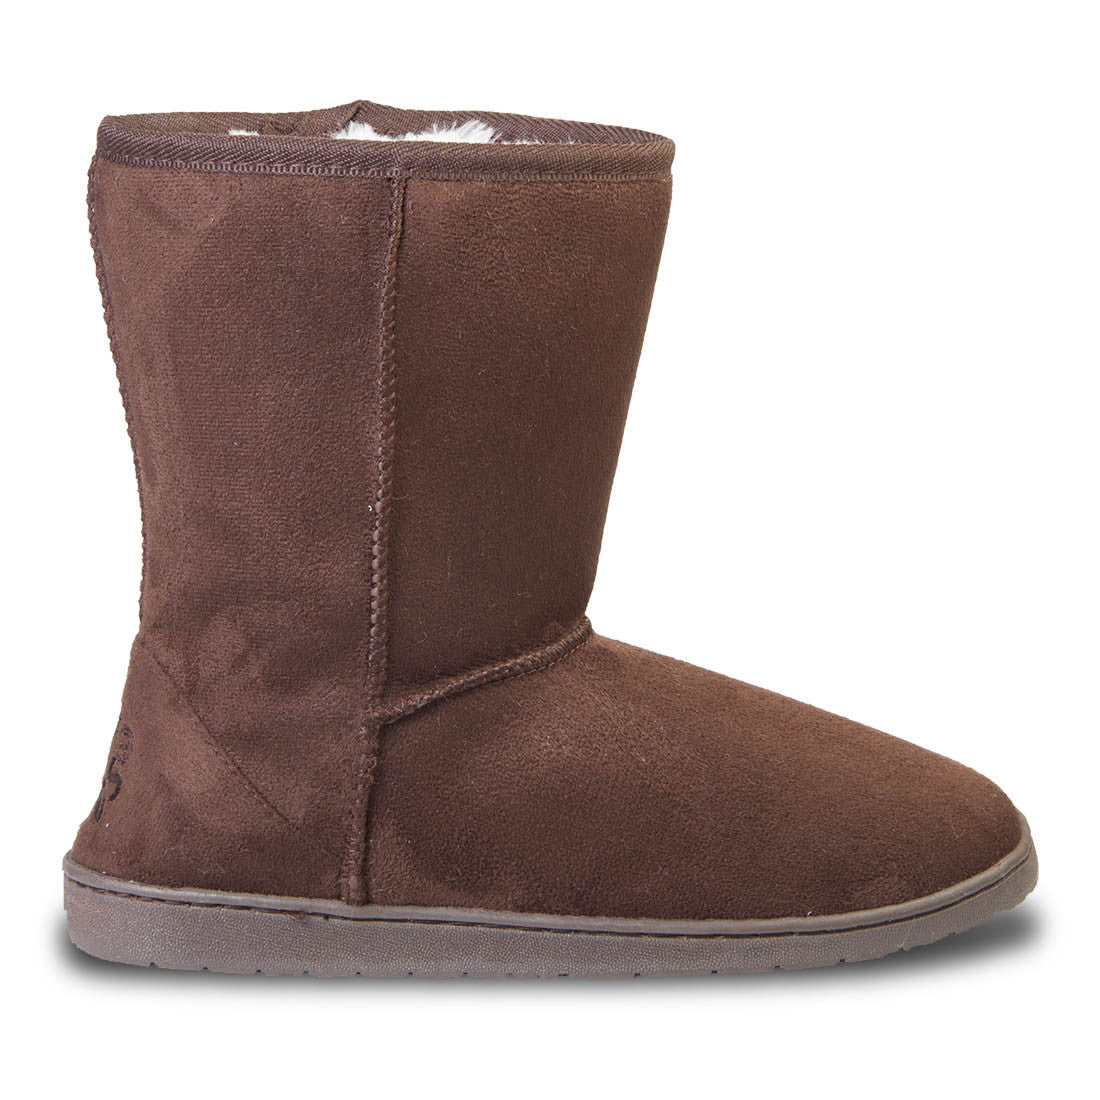 Women's 9-inch Microfiber Boots - Chocolate